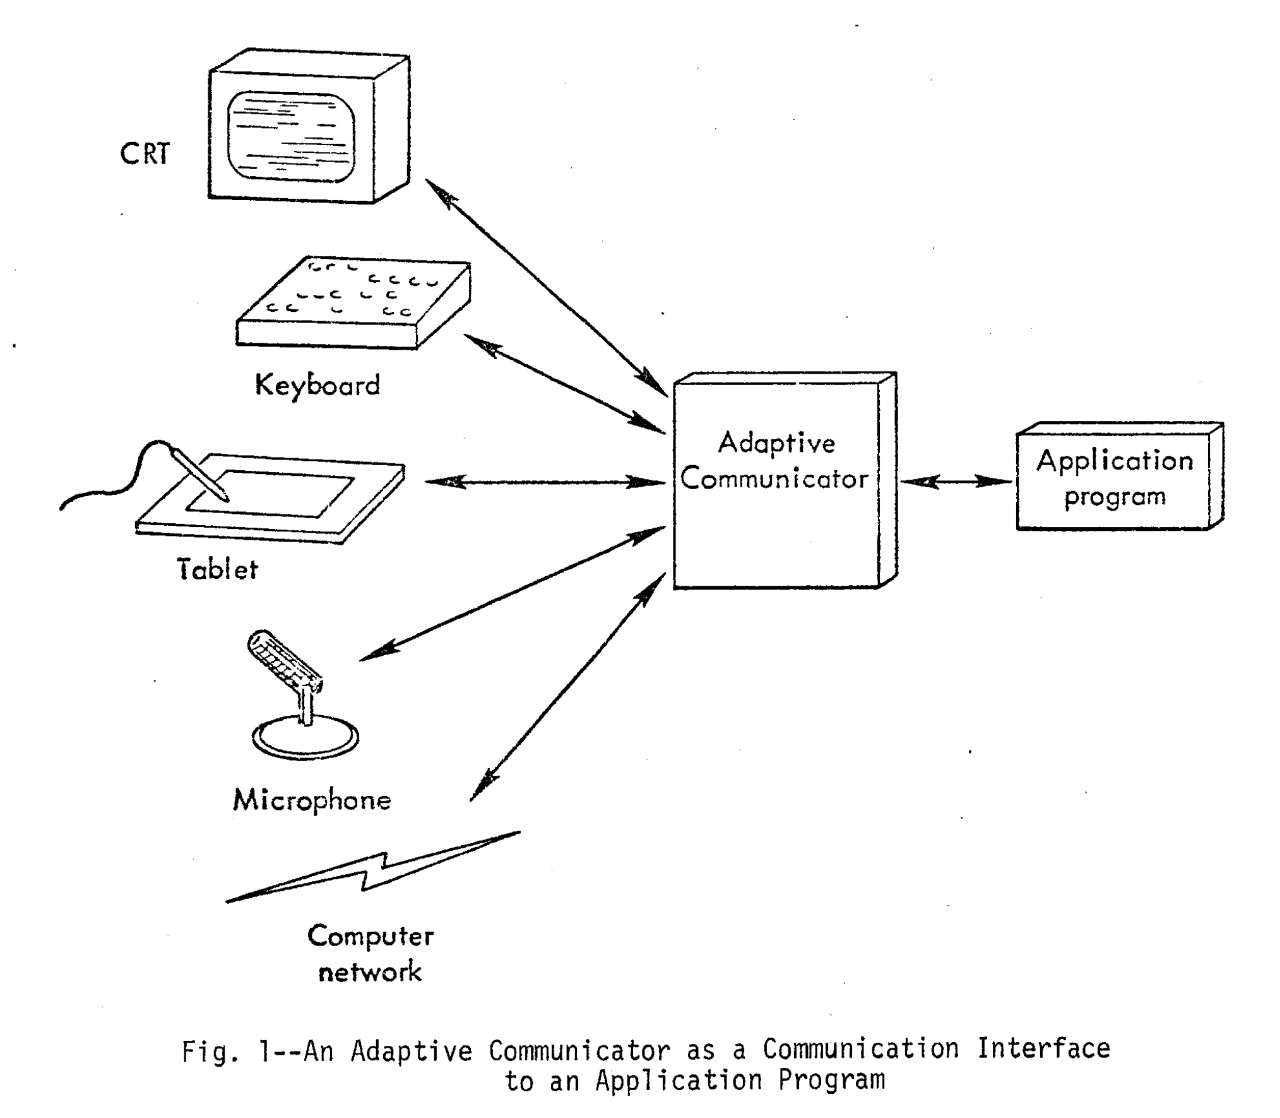 a flow diagram with CRT, microphone, tablet, keyboard, and computer network communicating with an adaptive communicator, which then communicates with a computer program